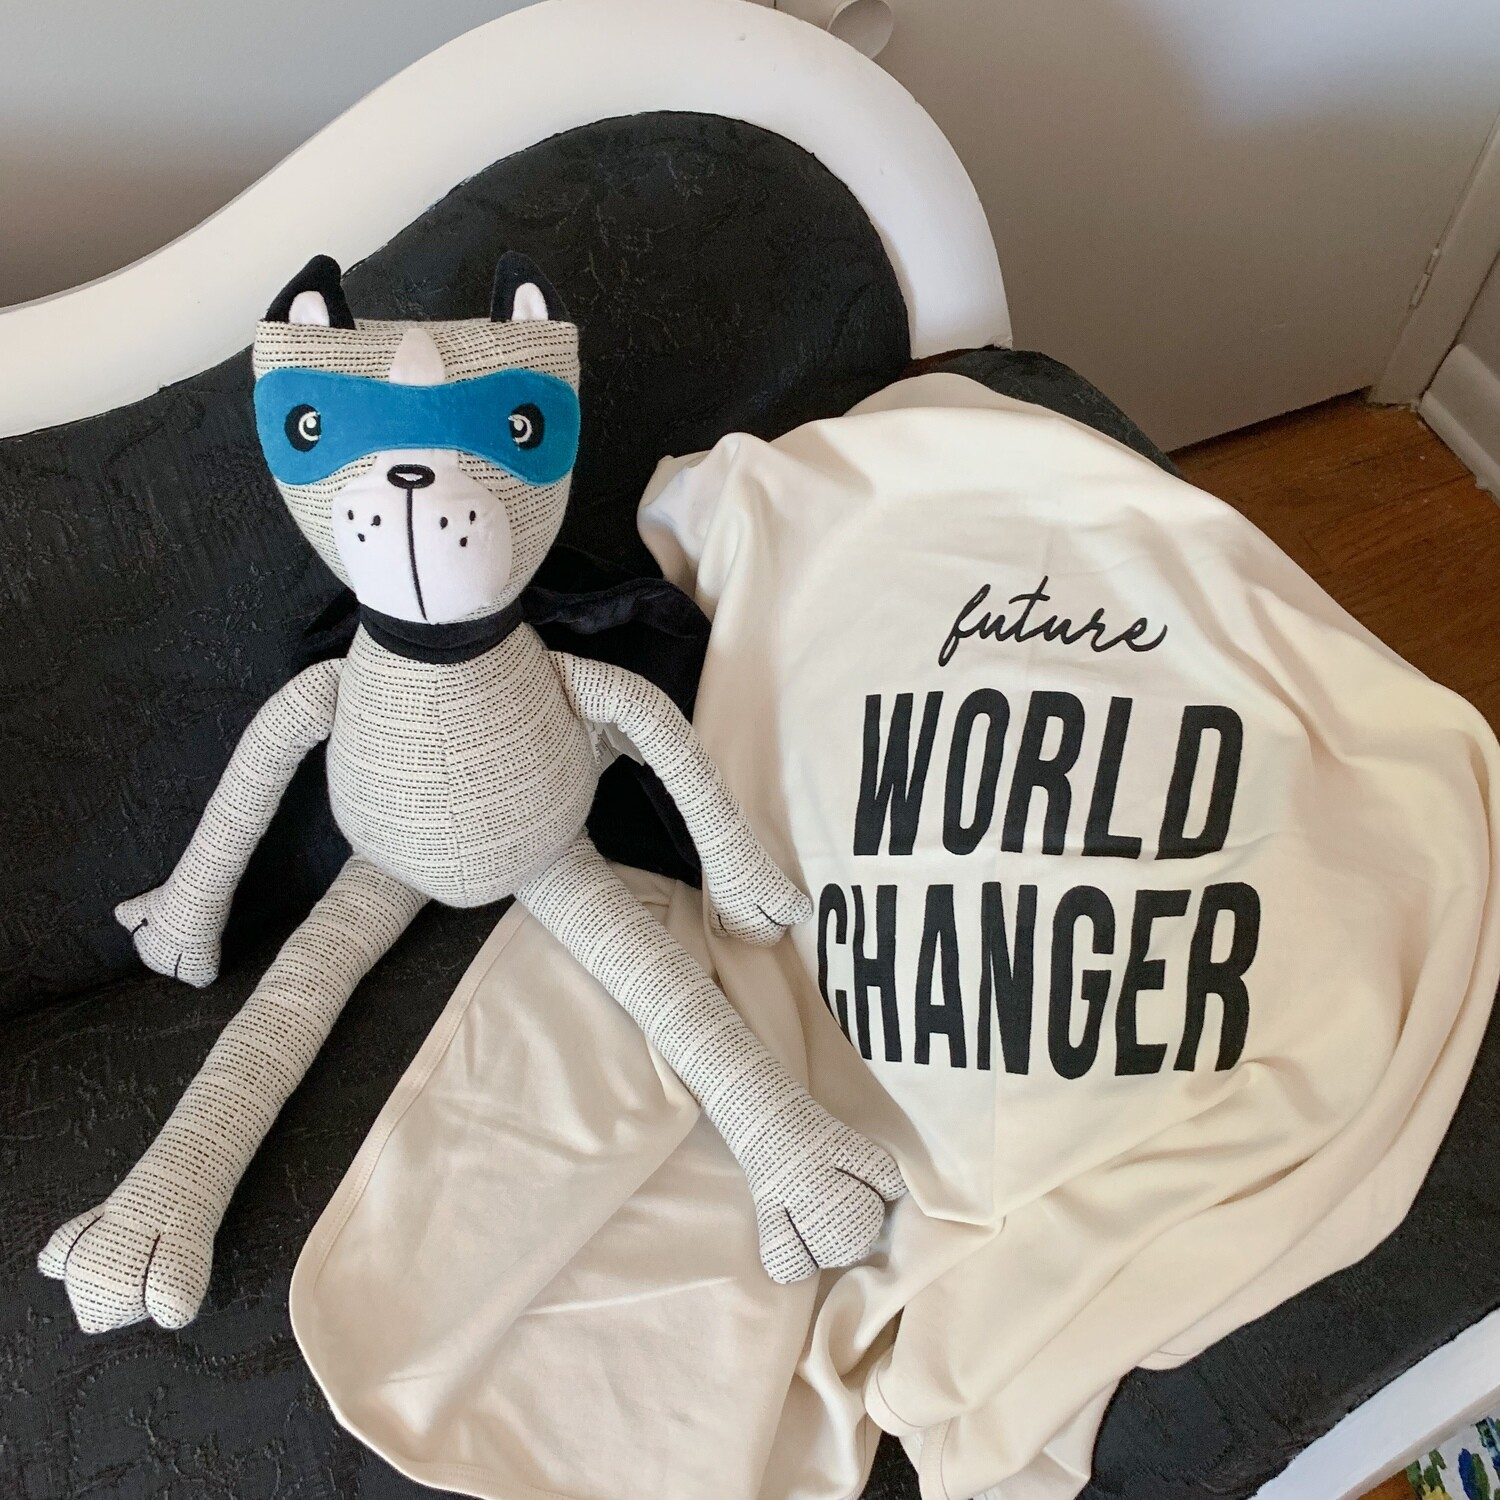 World Changer Blankets